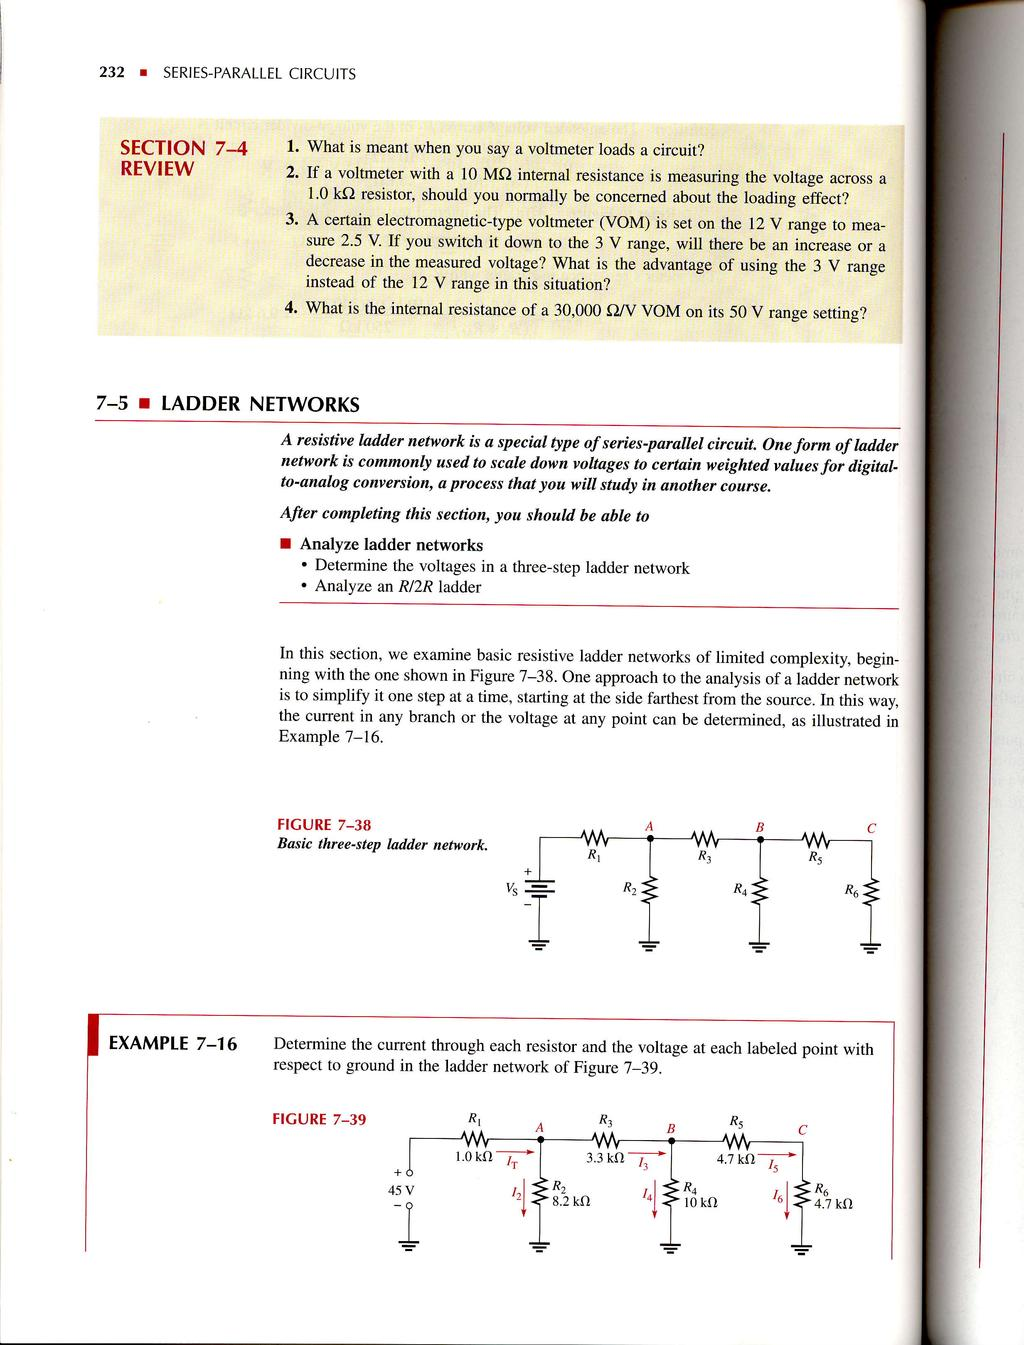 Seriesparallel Circuits Pdf Stage 1 The Digital To Analog Converter R 2r Network 232 Series Parallel Ctrcutts Sectton 7 4 Review L What Is Meanl